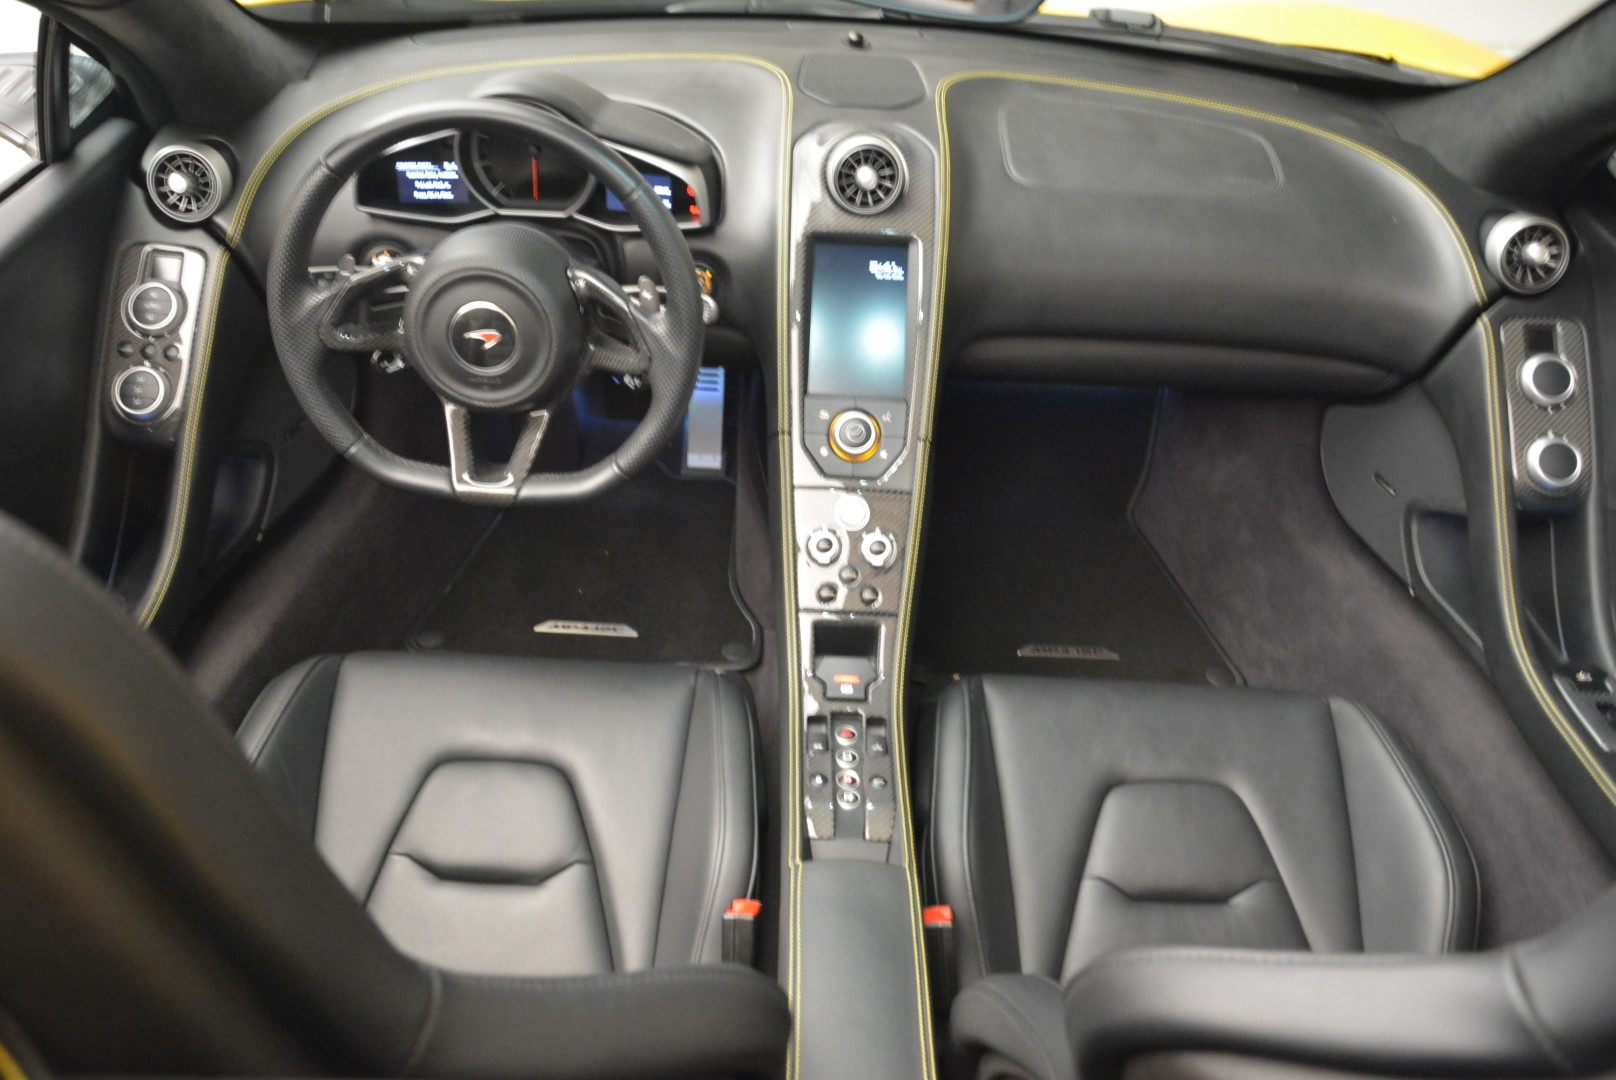 Used 2014 McLaren MP4-12C Spider For Sale In Greenwich, CT 2057_p28